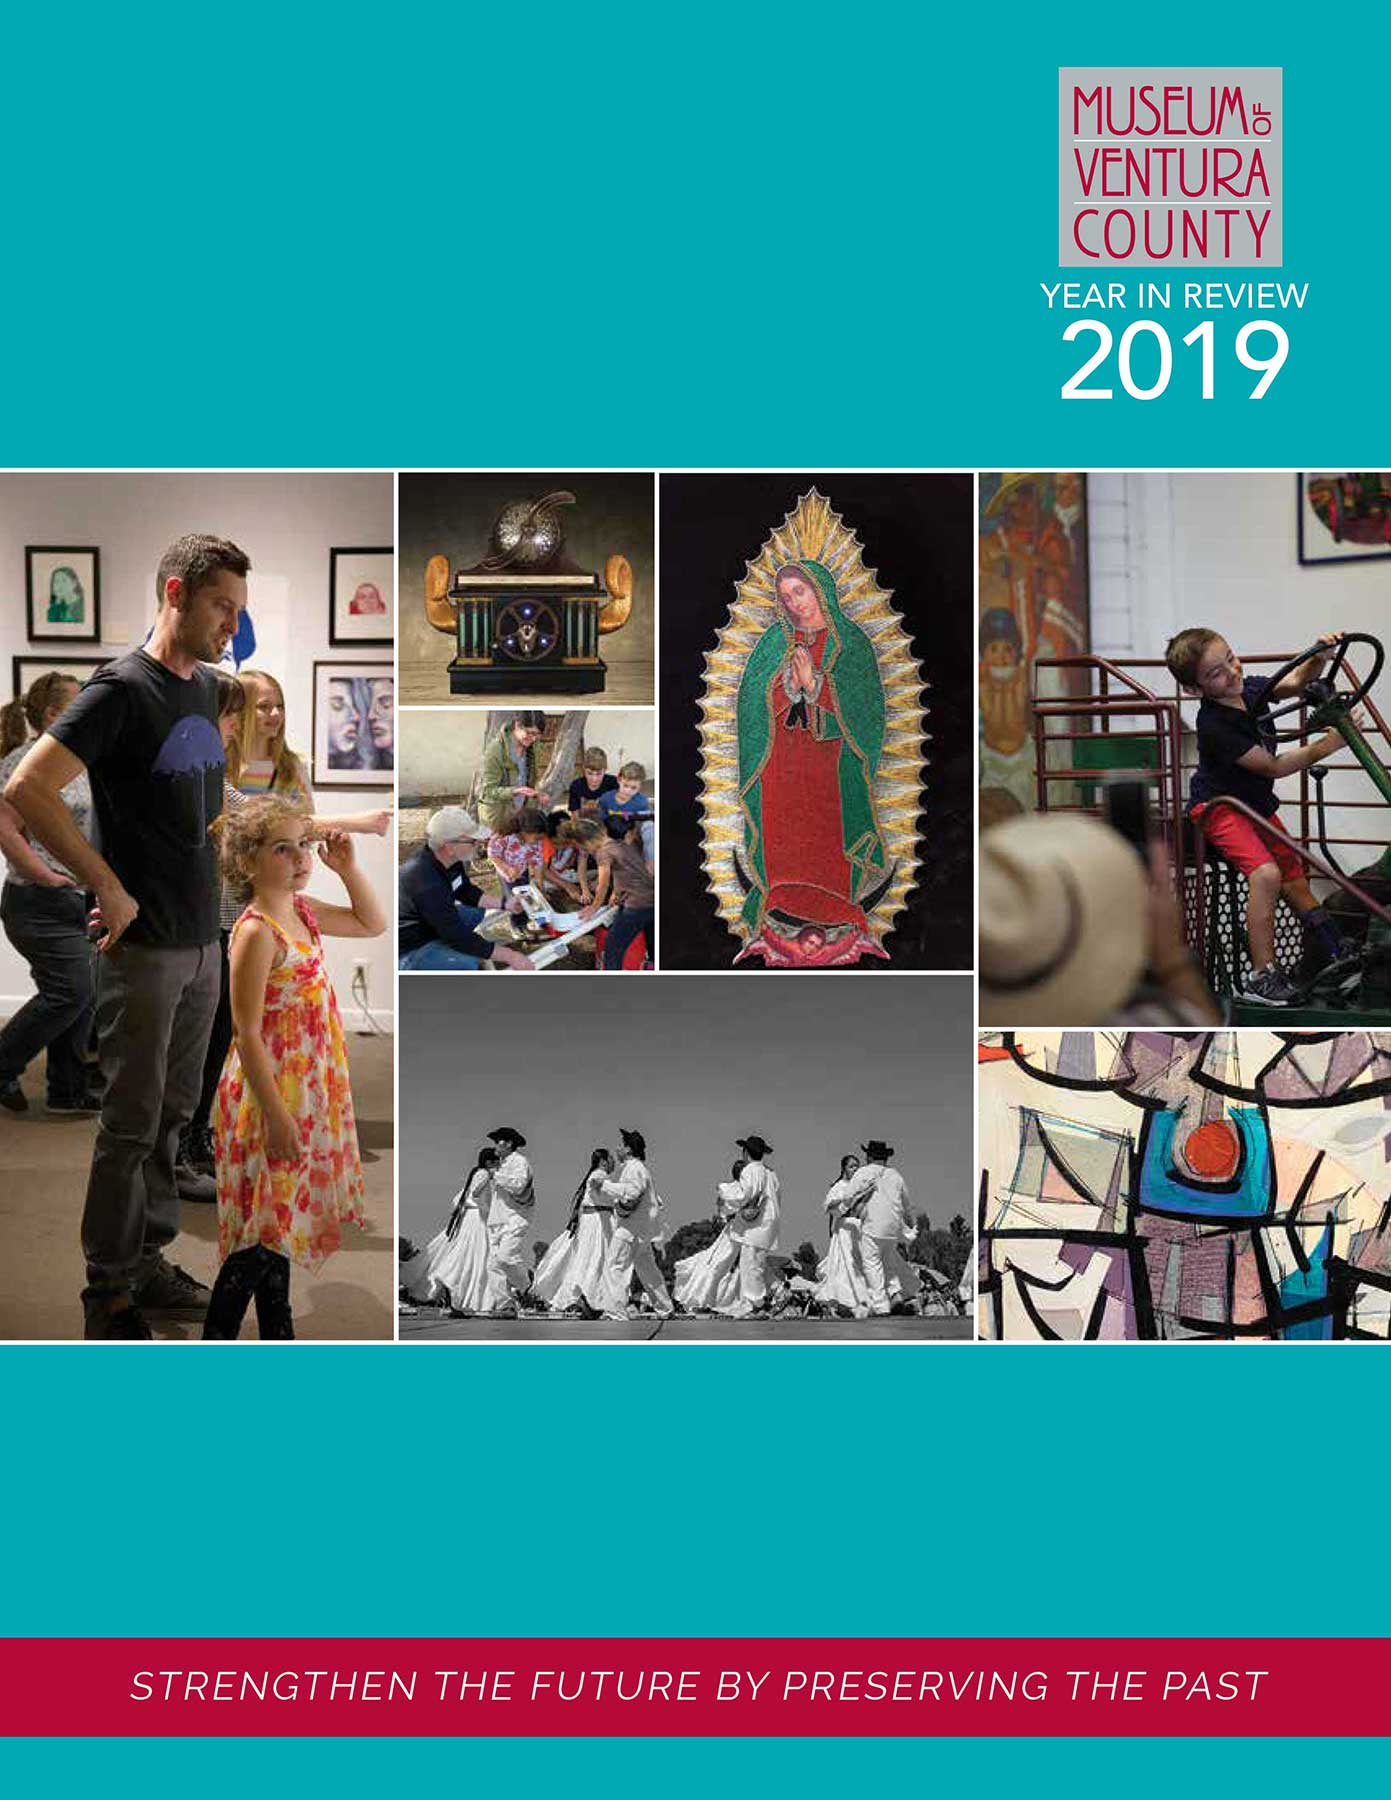 Museum of Ventura County 2018 Year in Review